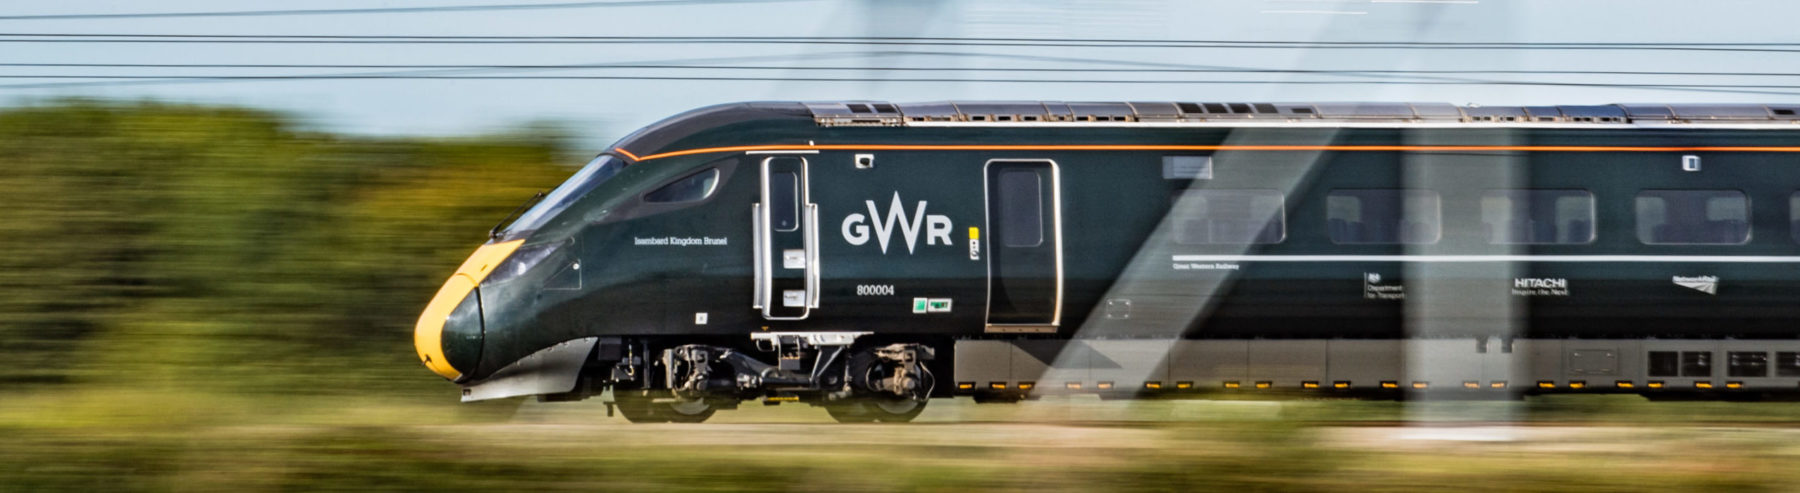 GWR IET No. 800004 'Isambard Kingdom Brunel' is captured at speed along the Great Western Mainline near Challow on 28th August 2017.